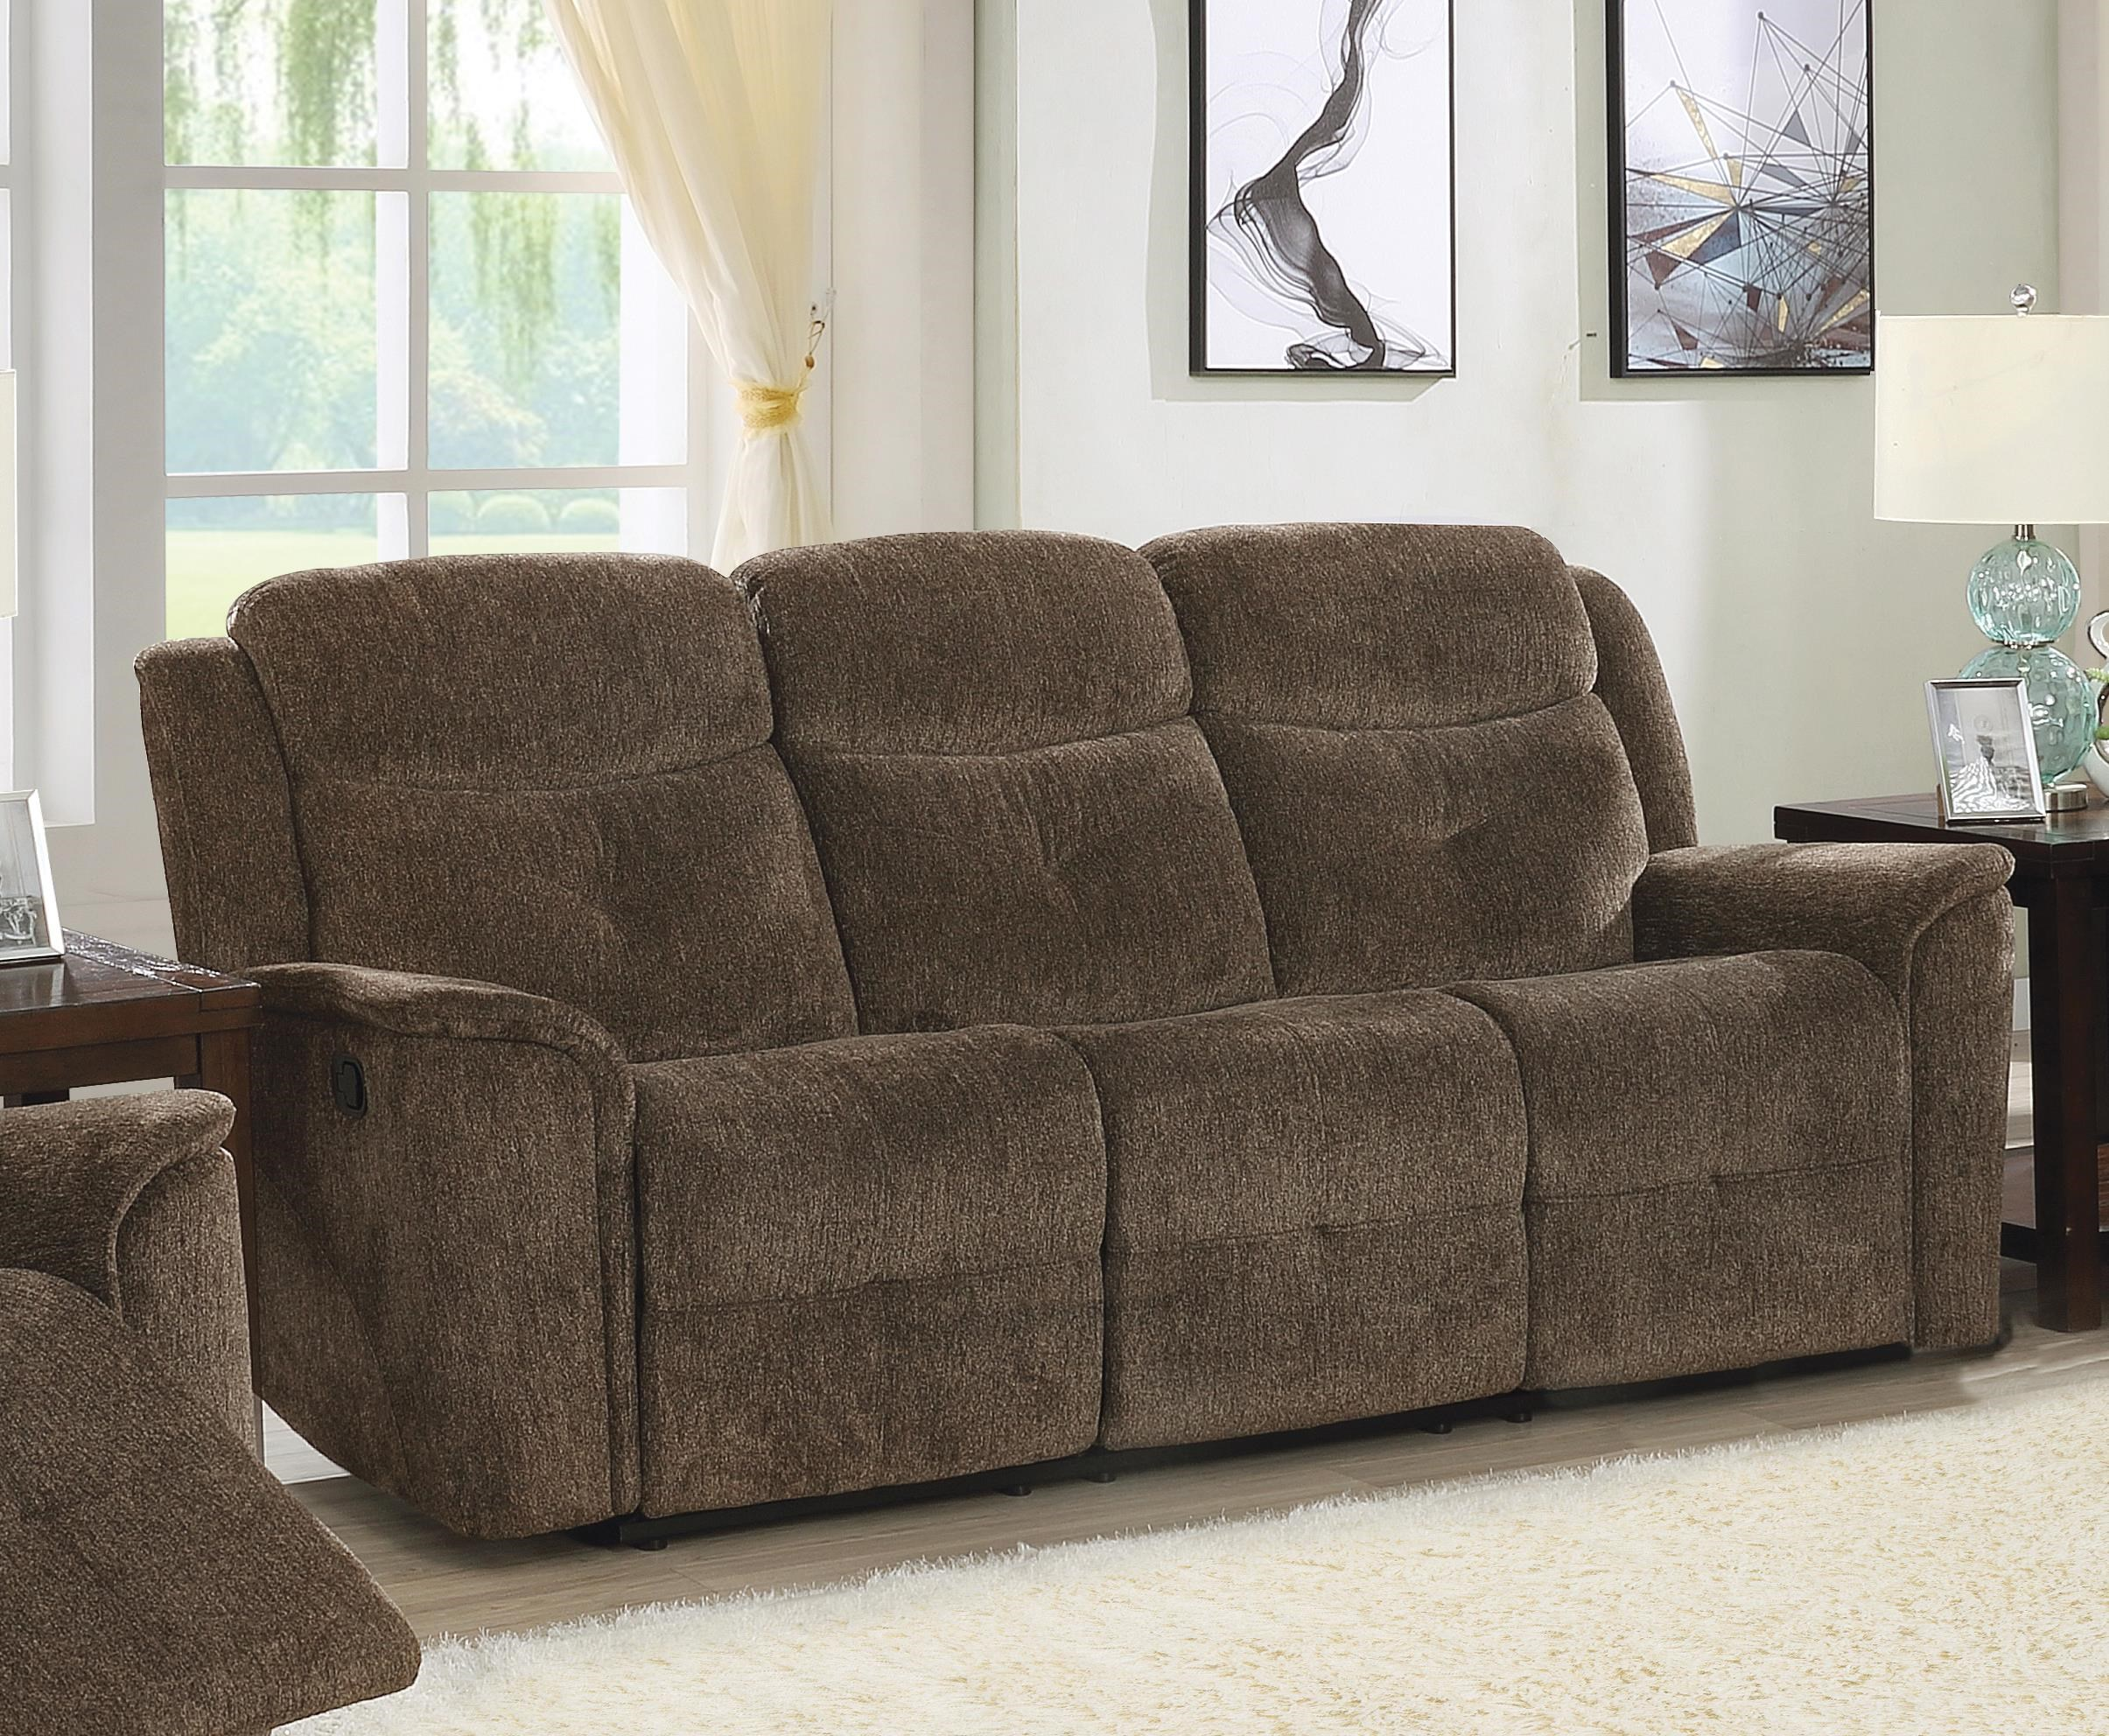 Havana Power Reclining Sofa